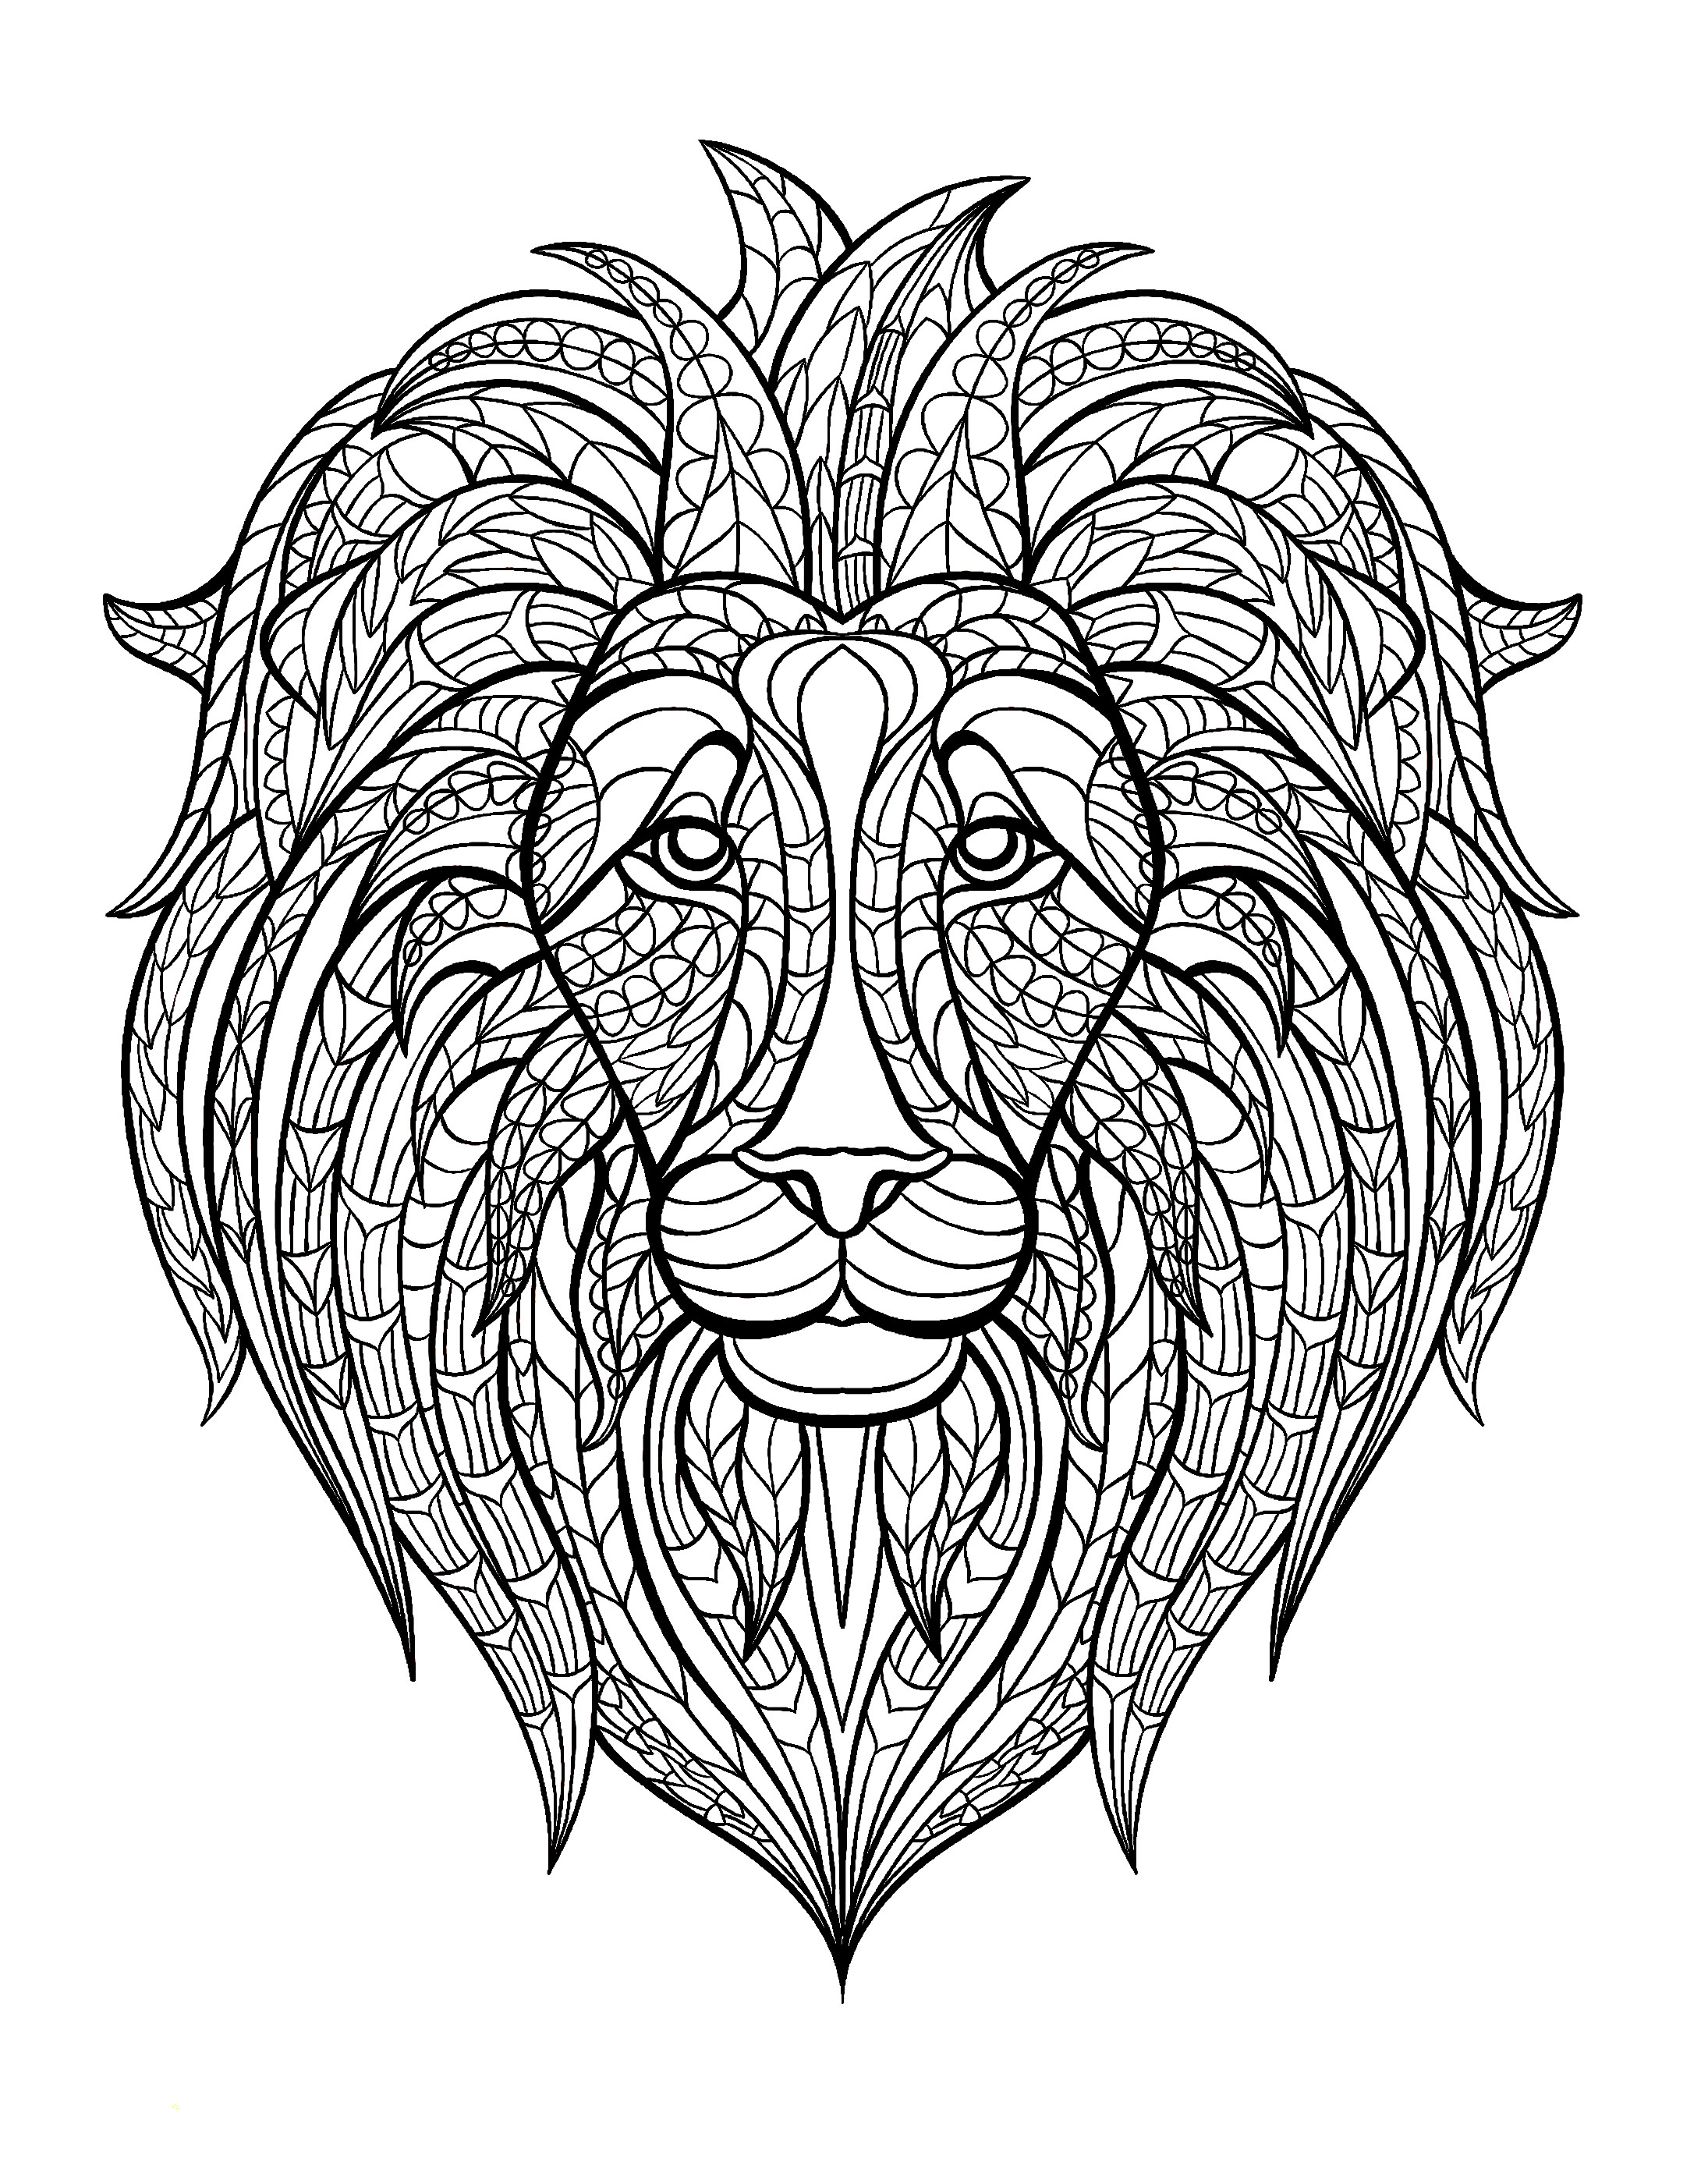 Animal Adult Coloring Book Giveaway on Natural Blaze!